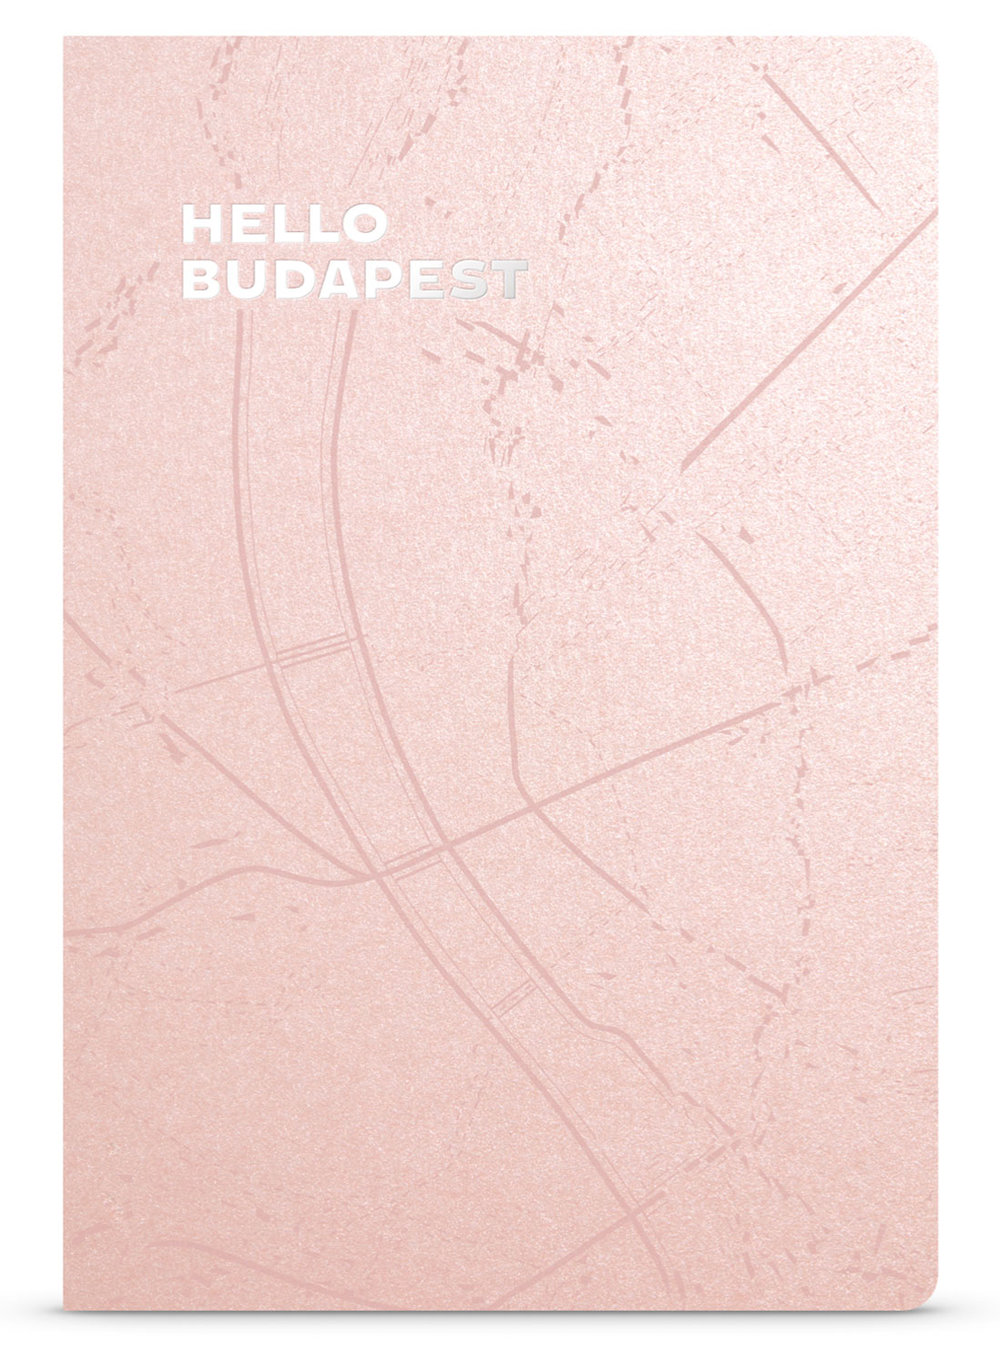 Hello Budapest eco-design notebook Rose Gold details | NOTESS